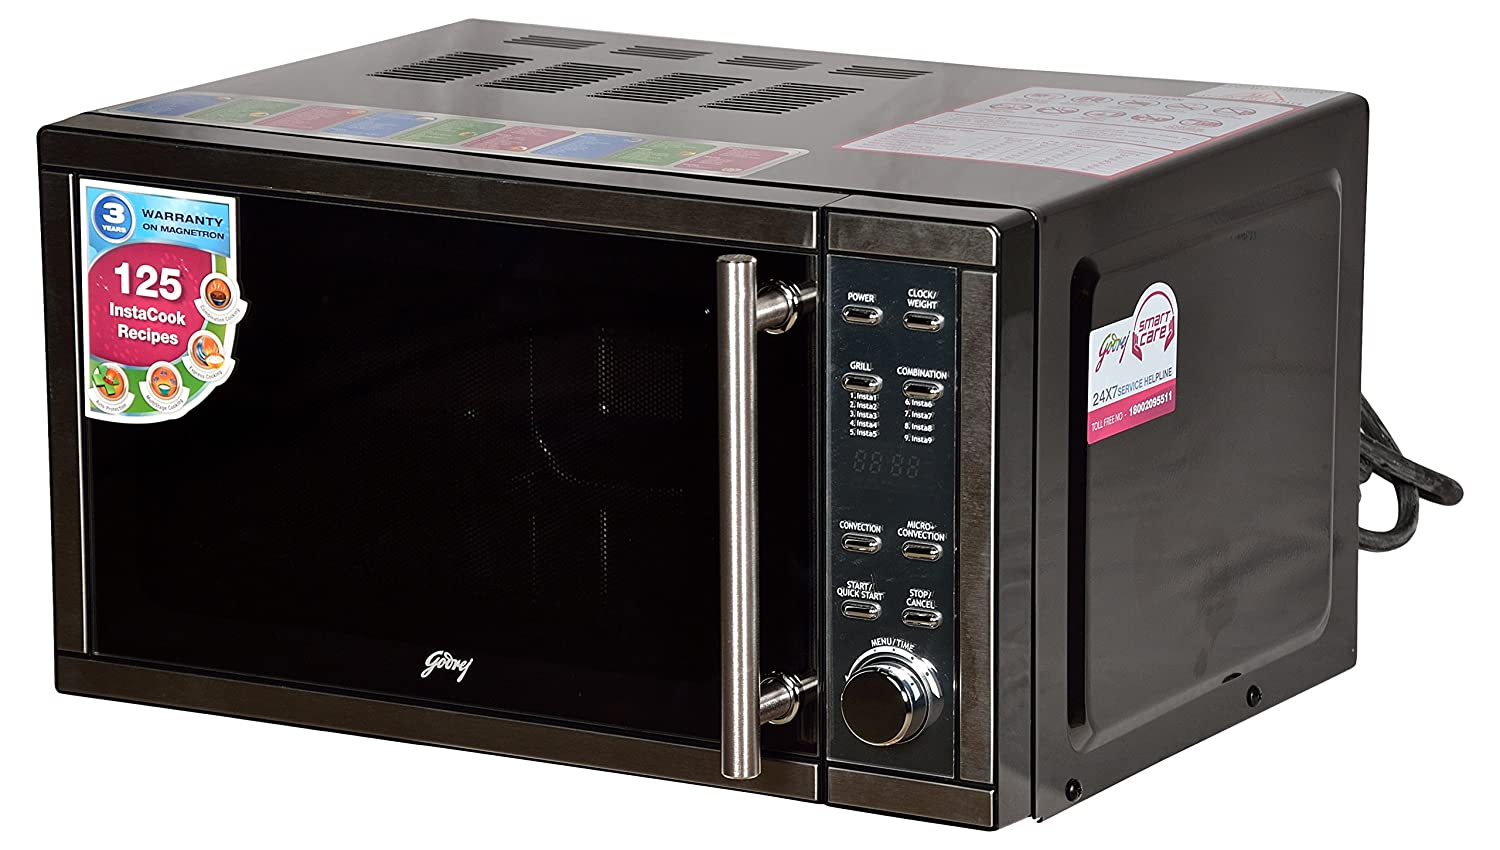 Godrej 20 L Convection Microwave Oven (GMX20CA3MKZ, Silver): Amazon.in:  Home & Kitchen